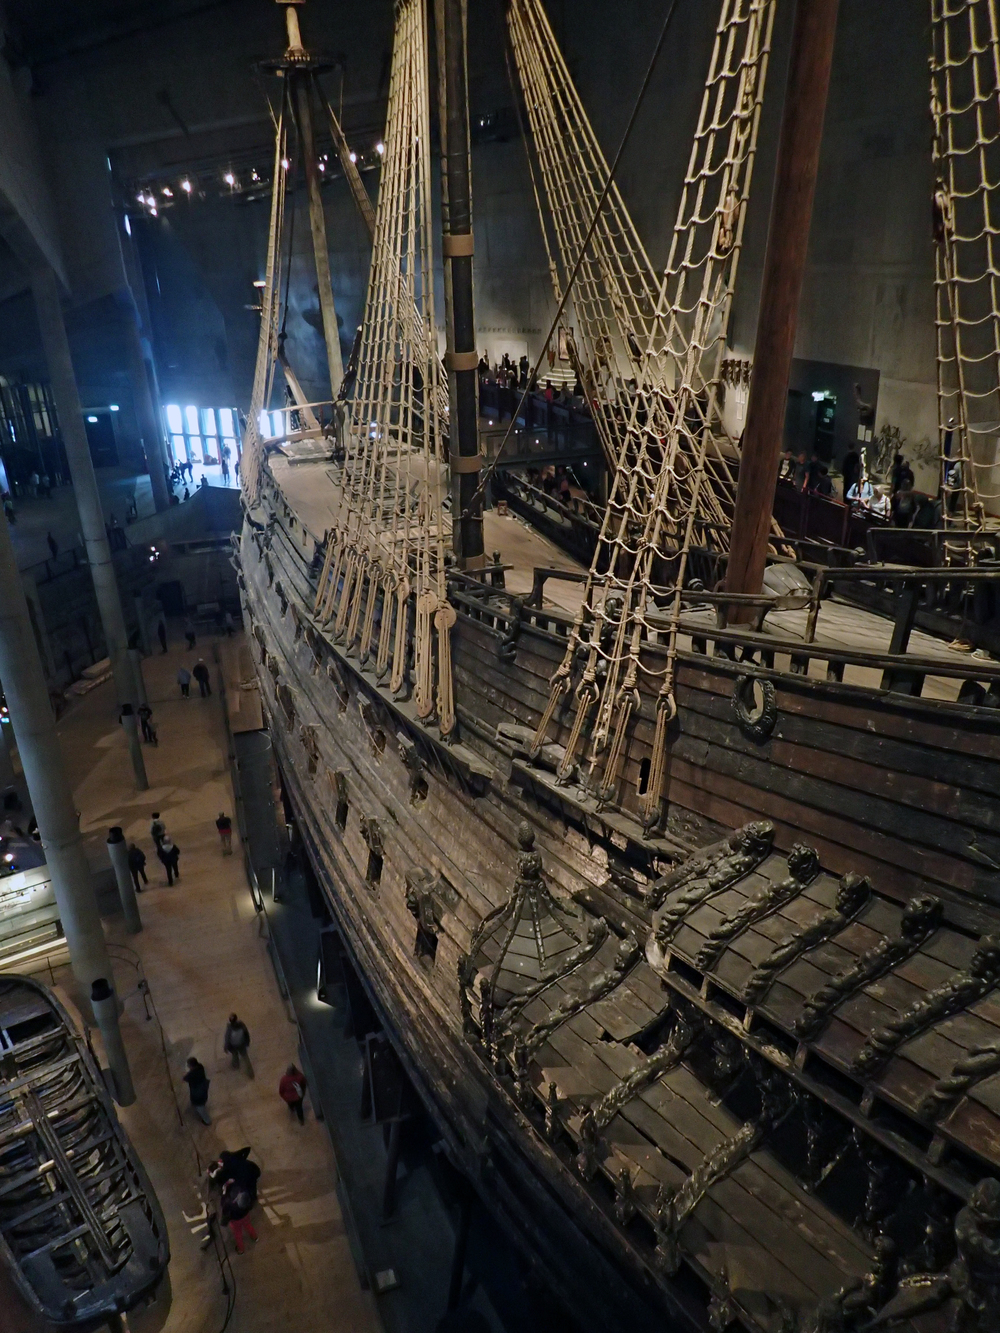 Vasa, the ship that sank on the maiden voyage in the harbor of Stockholm.